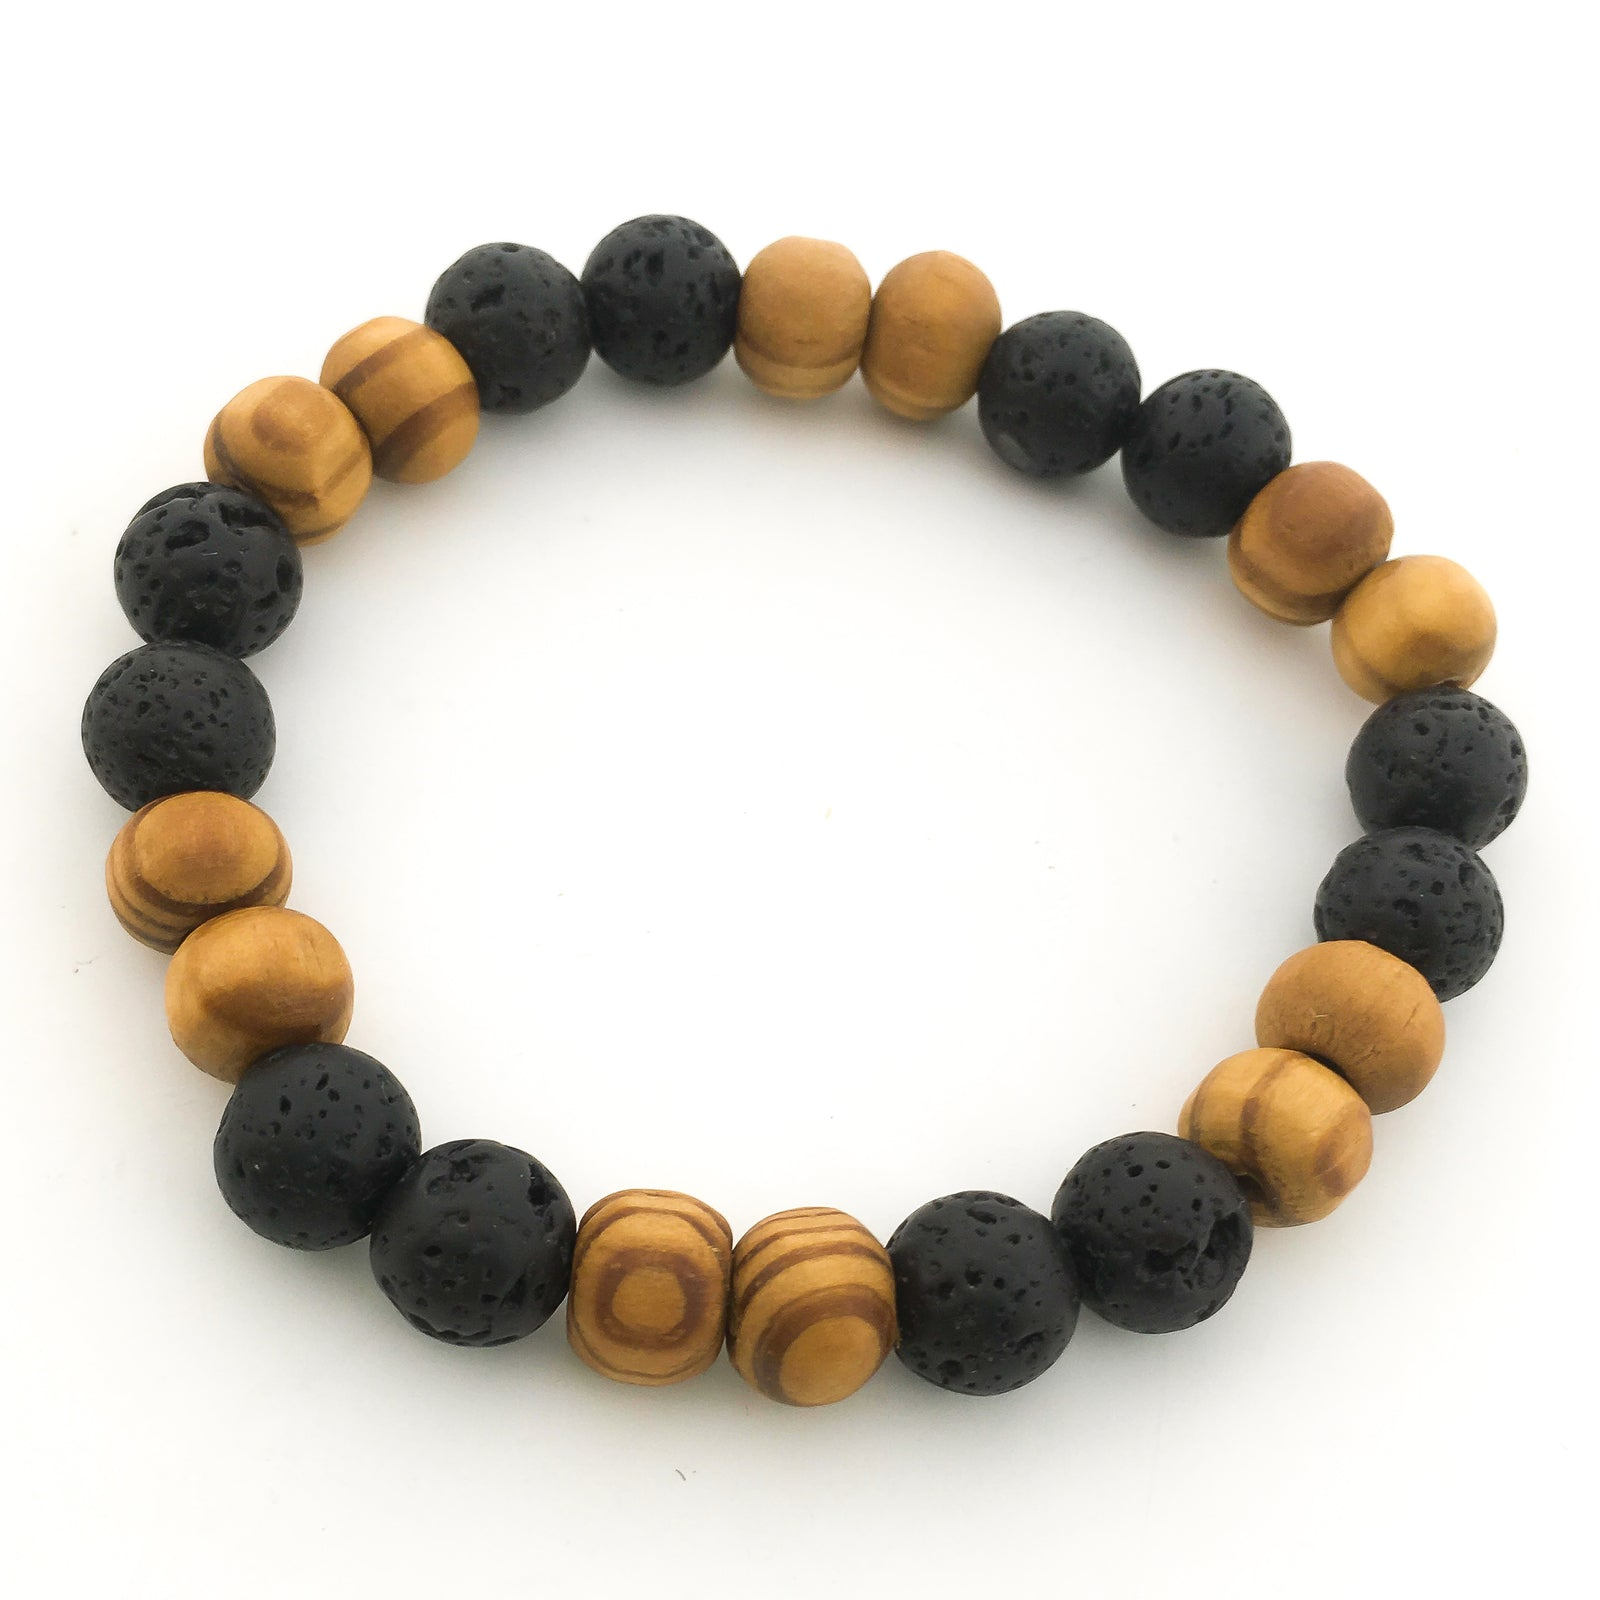 DOUBLE PATTERN LAVA & WOOD DIFFUSER BRACELET